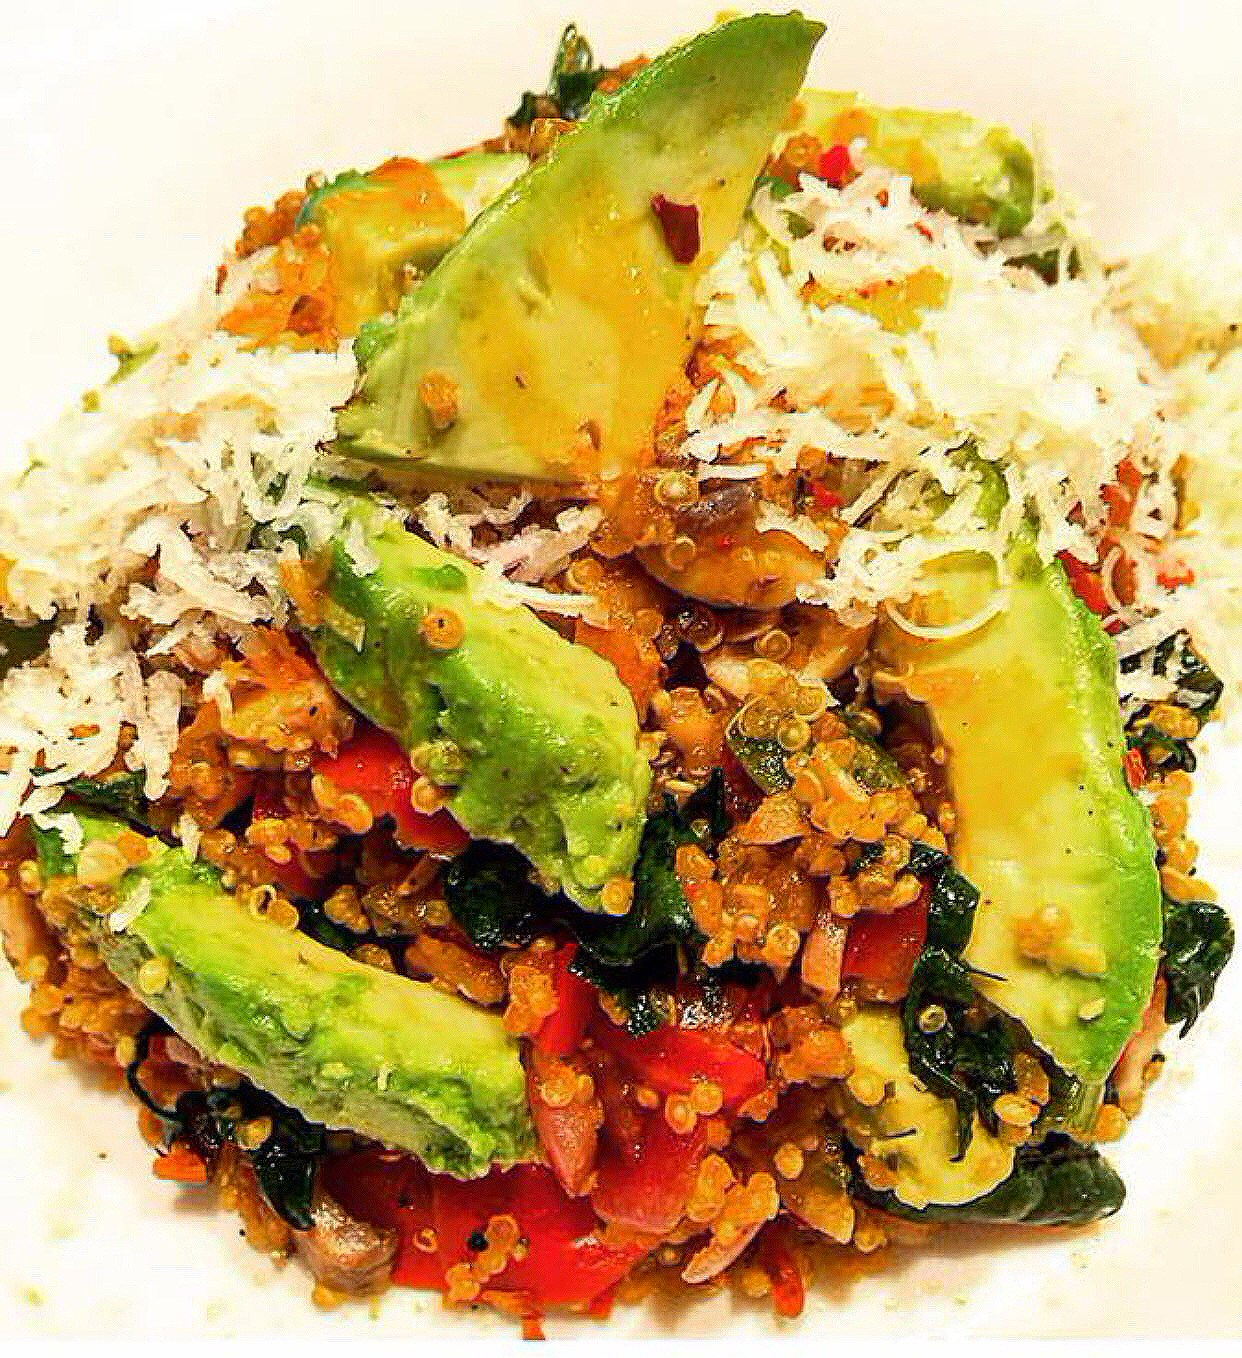 avocado_peppers_tomato_salad_delicious_healthy_foods